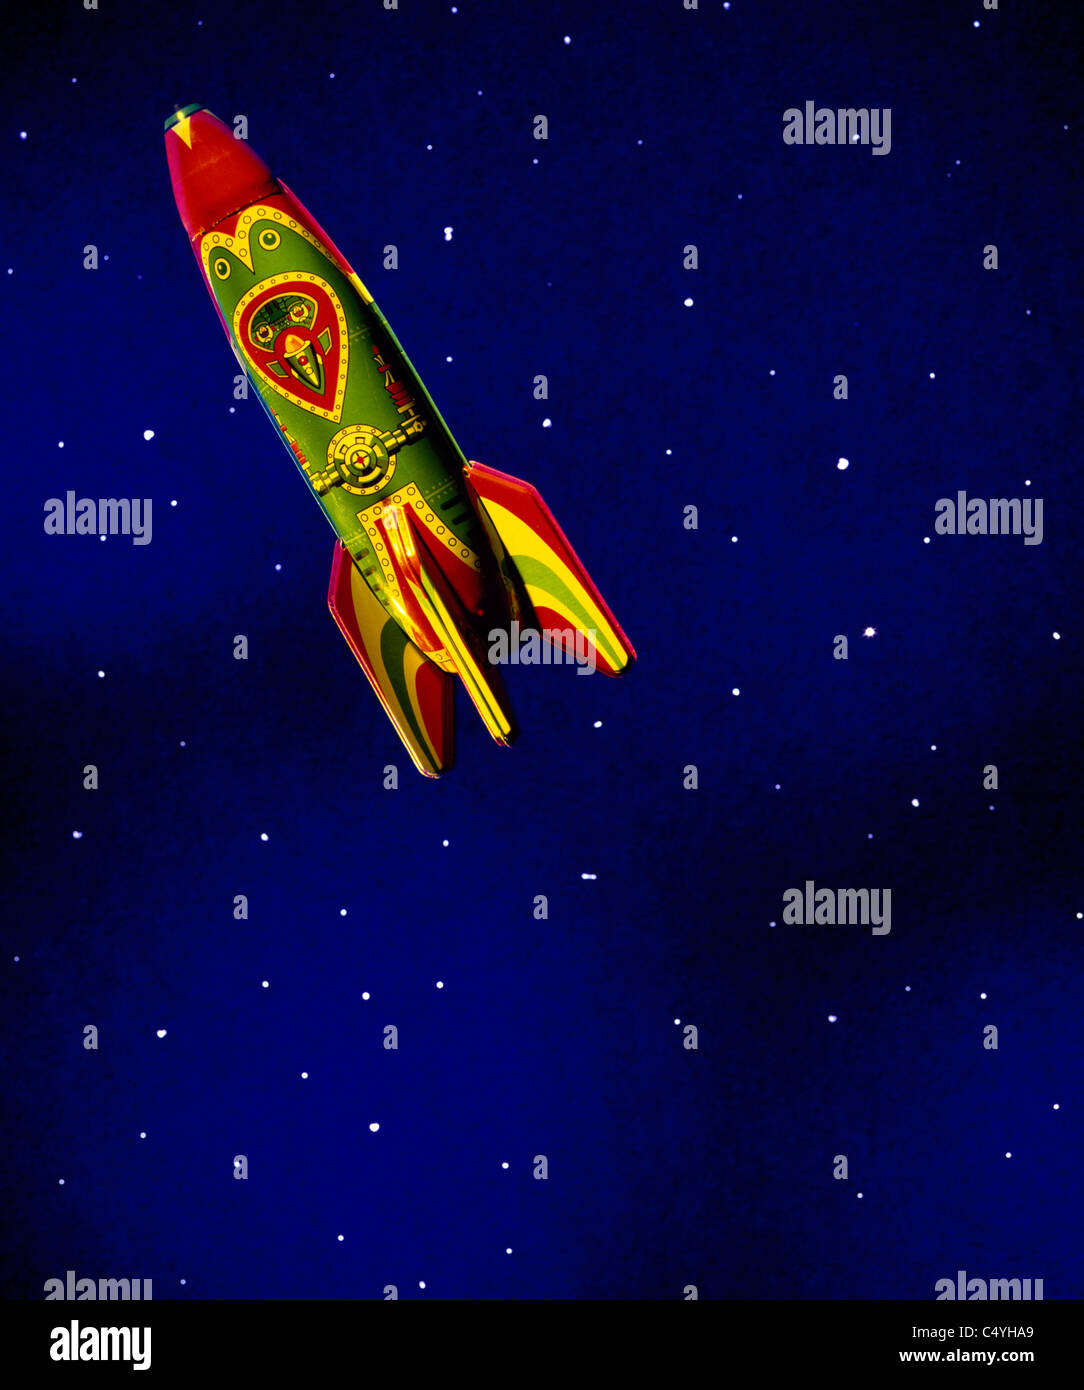 A children's toy rocket ship floating in dark blue space and stars - Stock Image